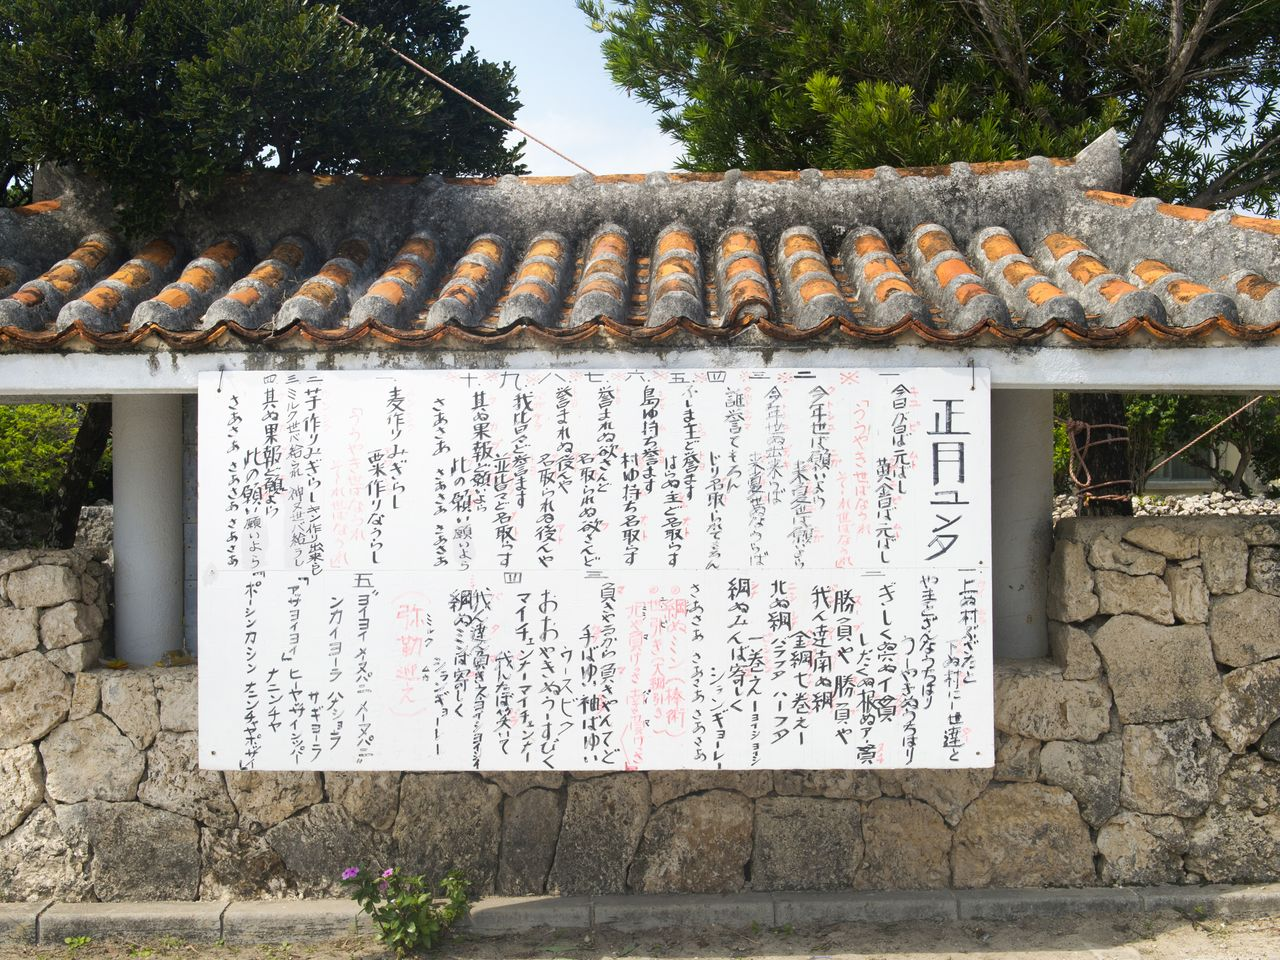 The lyrics to the New Year yunta are prominently displayed in front of the island's traditional arts center.